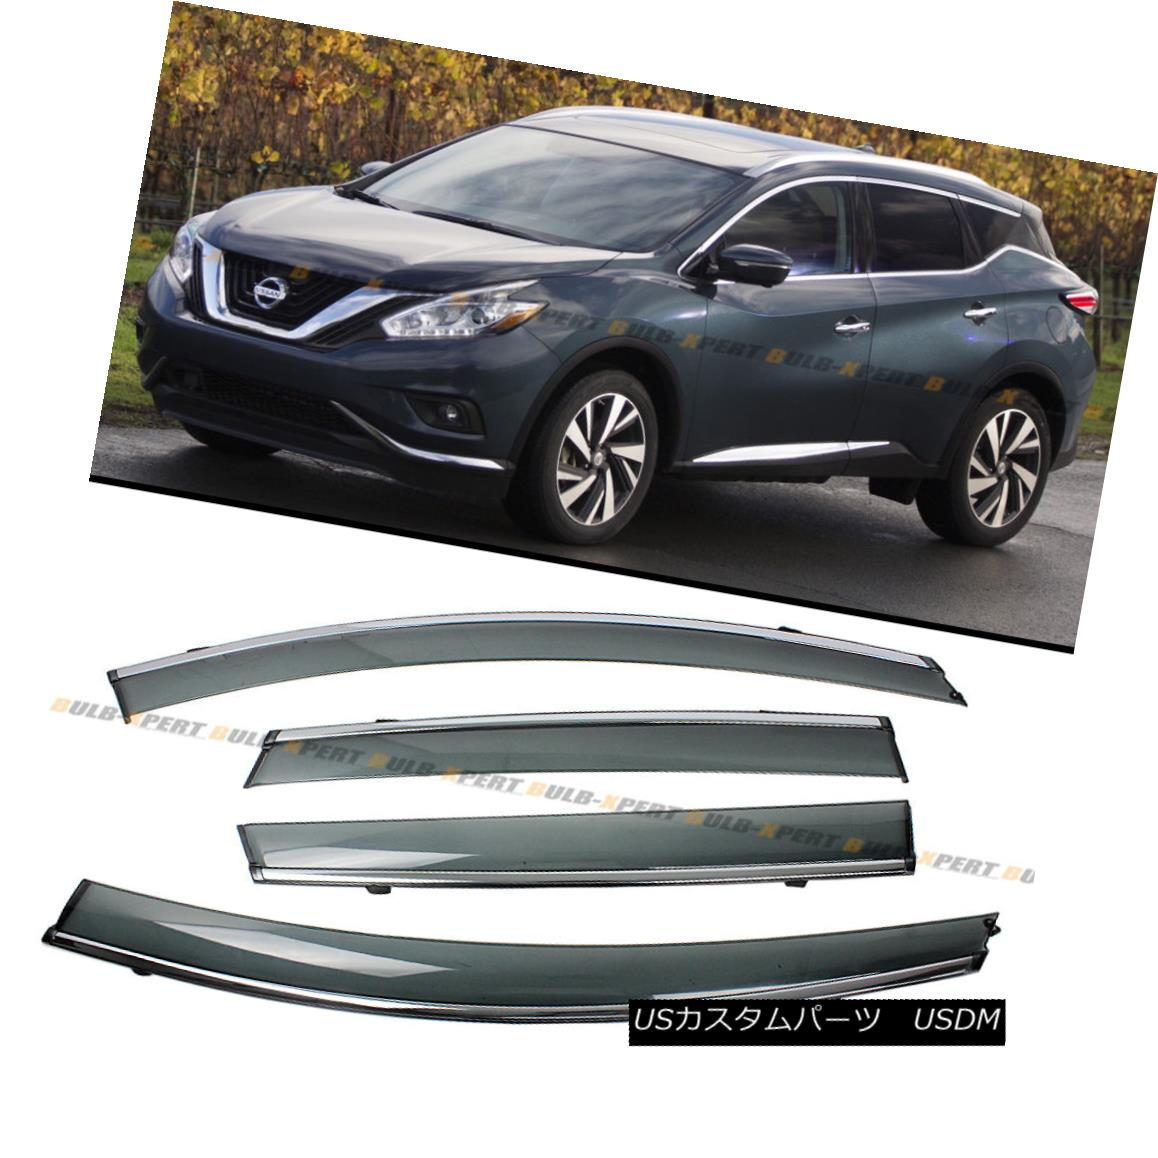 Fits Acura TSX 2009-2010 w//o License Plate Colgan Front End Mask Bra 2pc